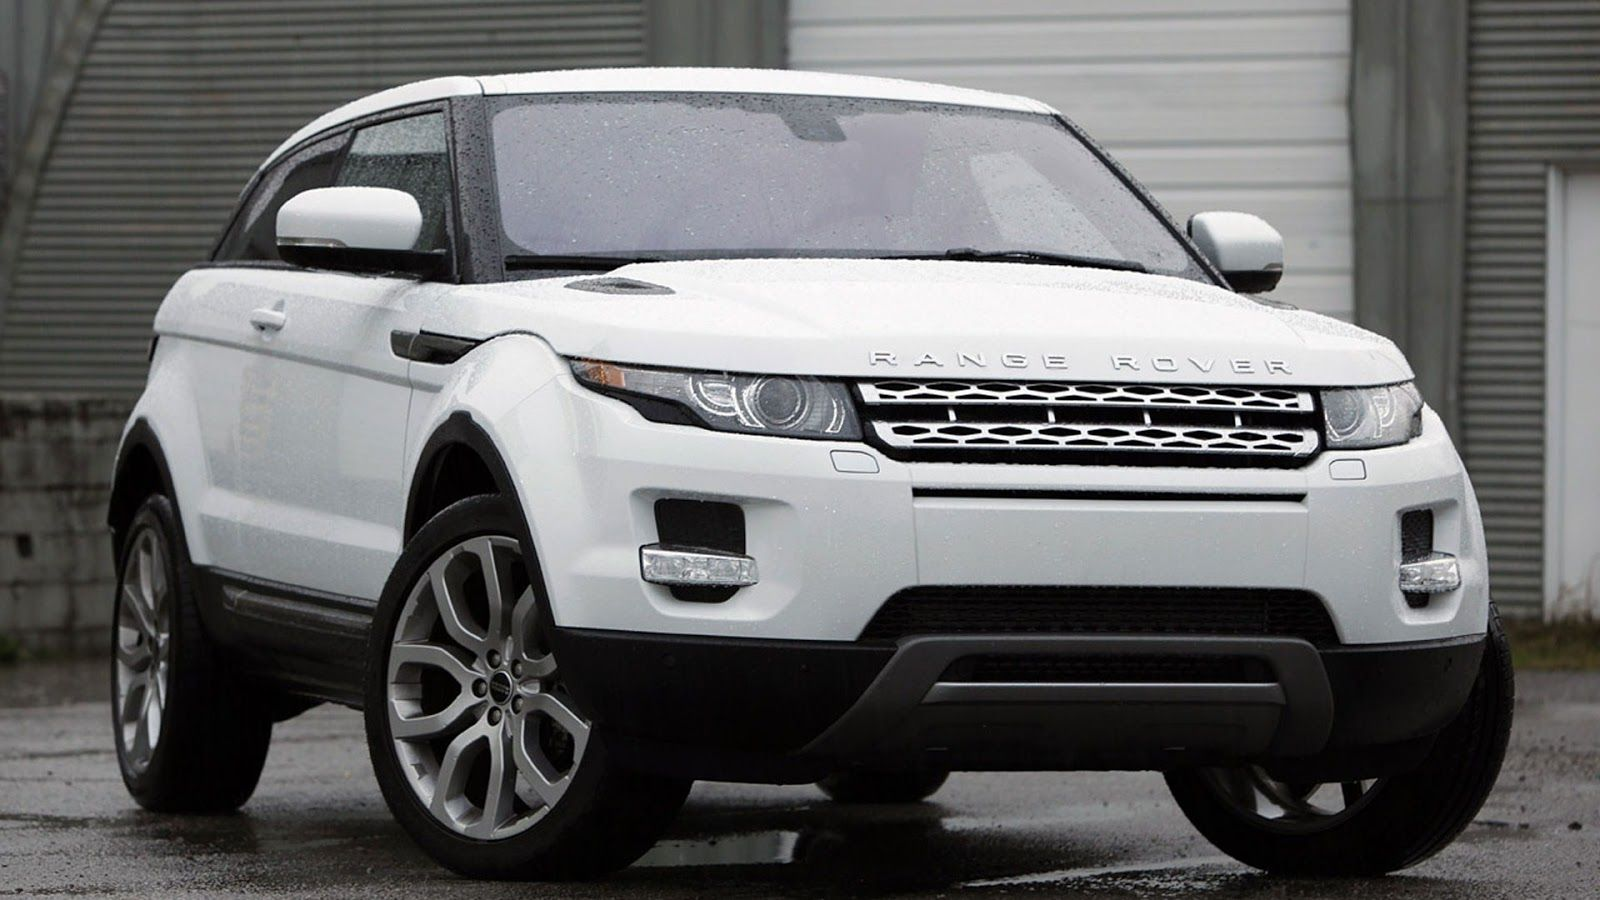 Range Rover Evoque: Short Reviews & Pictures | Auto Reviews & Gallery